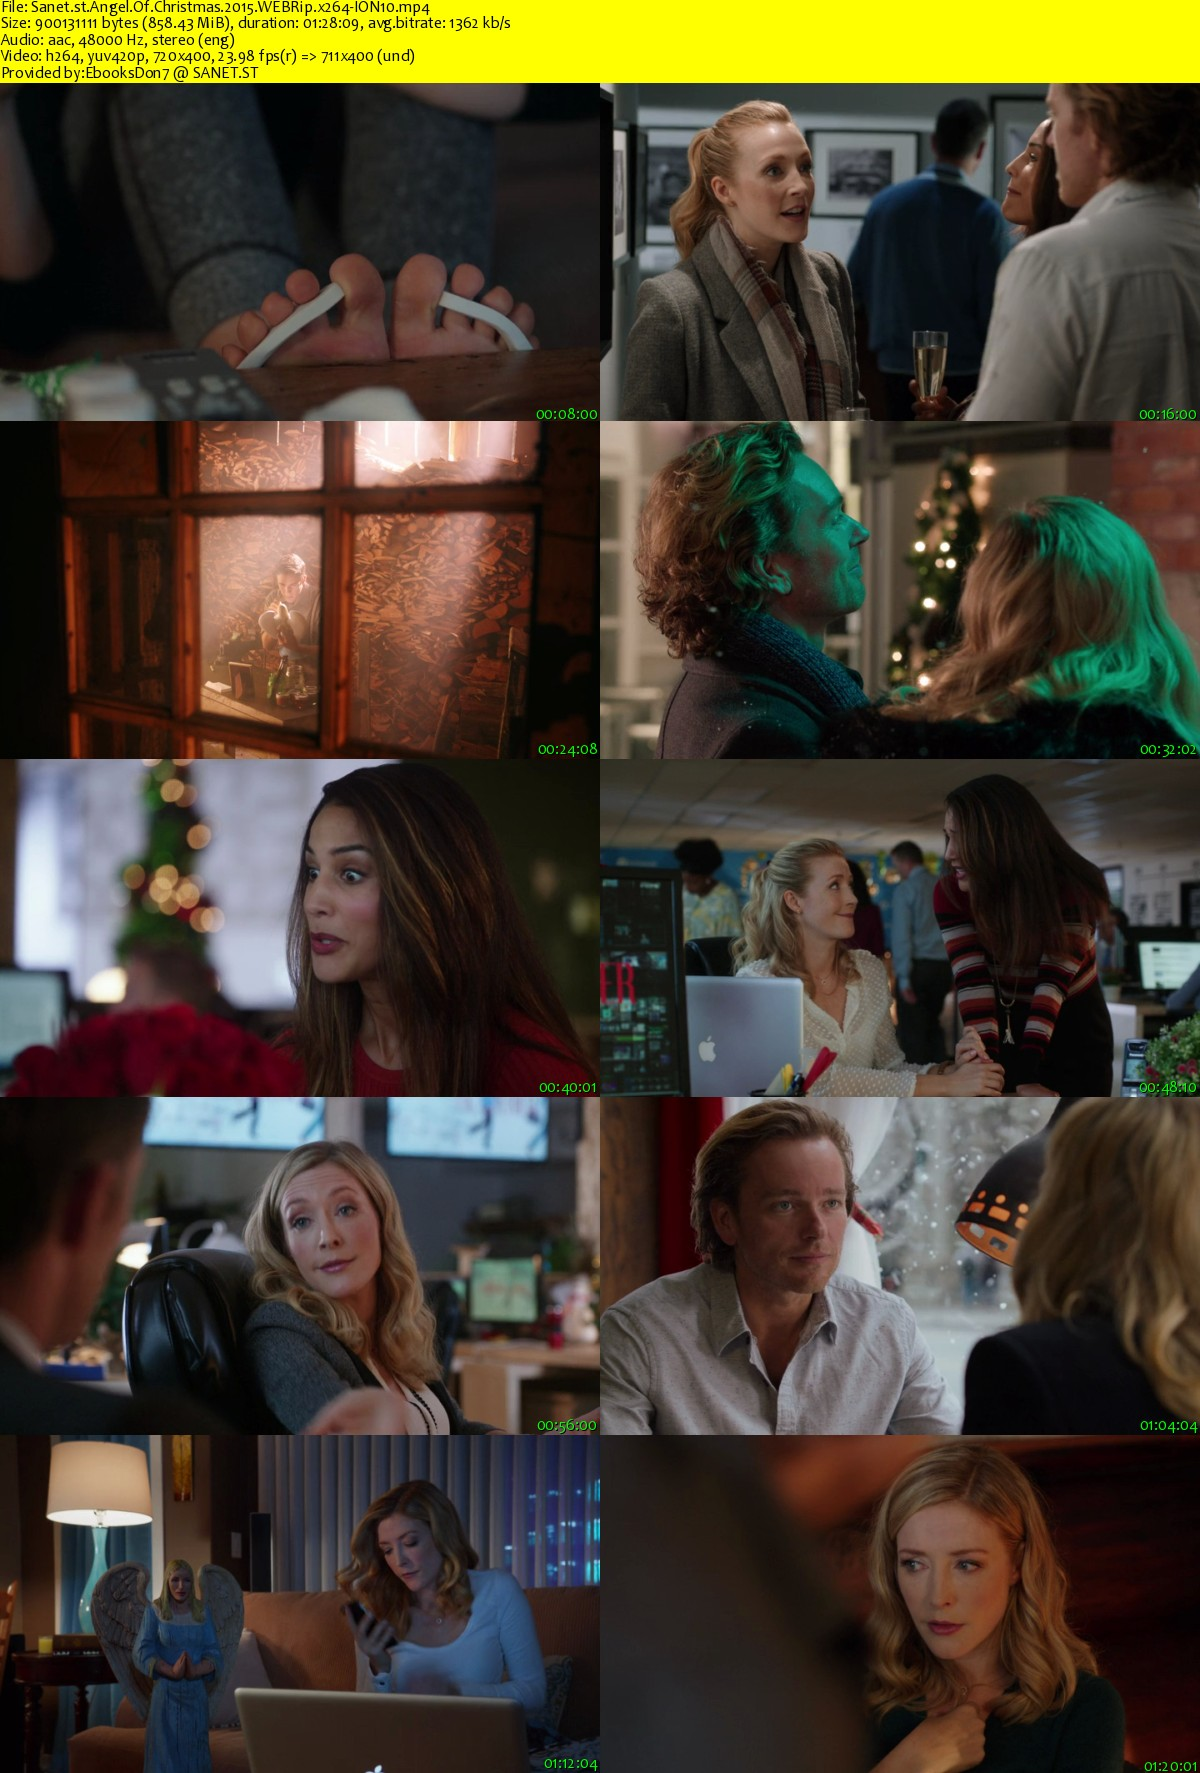 Angel Of Christmas.Download Angel Of Christmas 2015 Webrip X264 Ion10 Softarchive